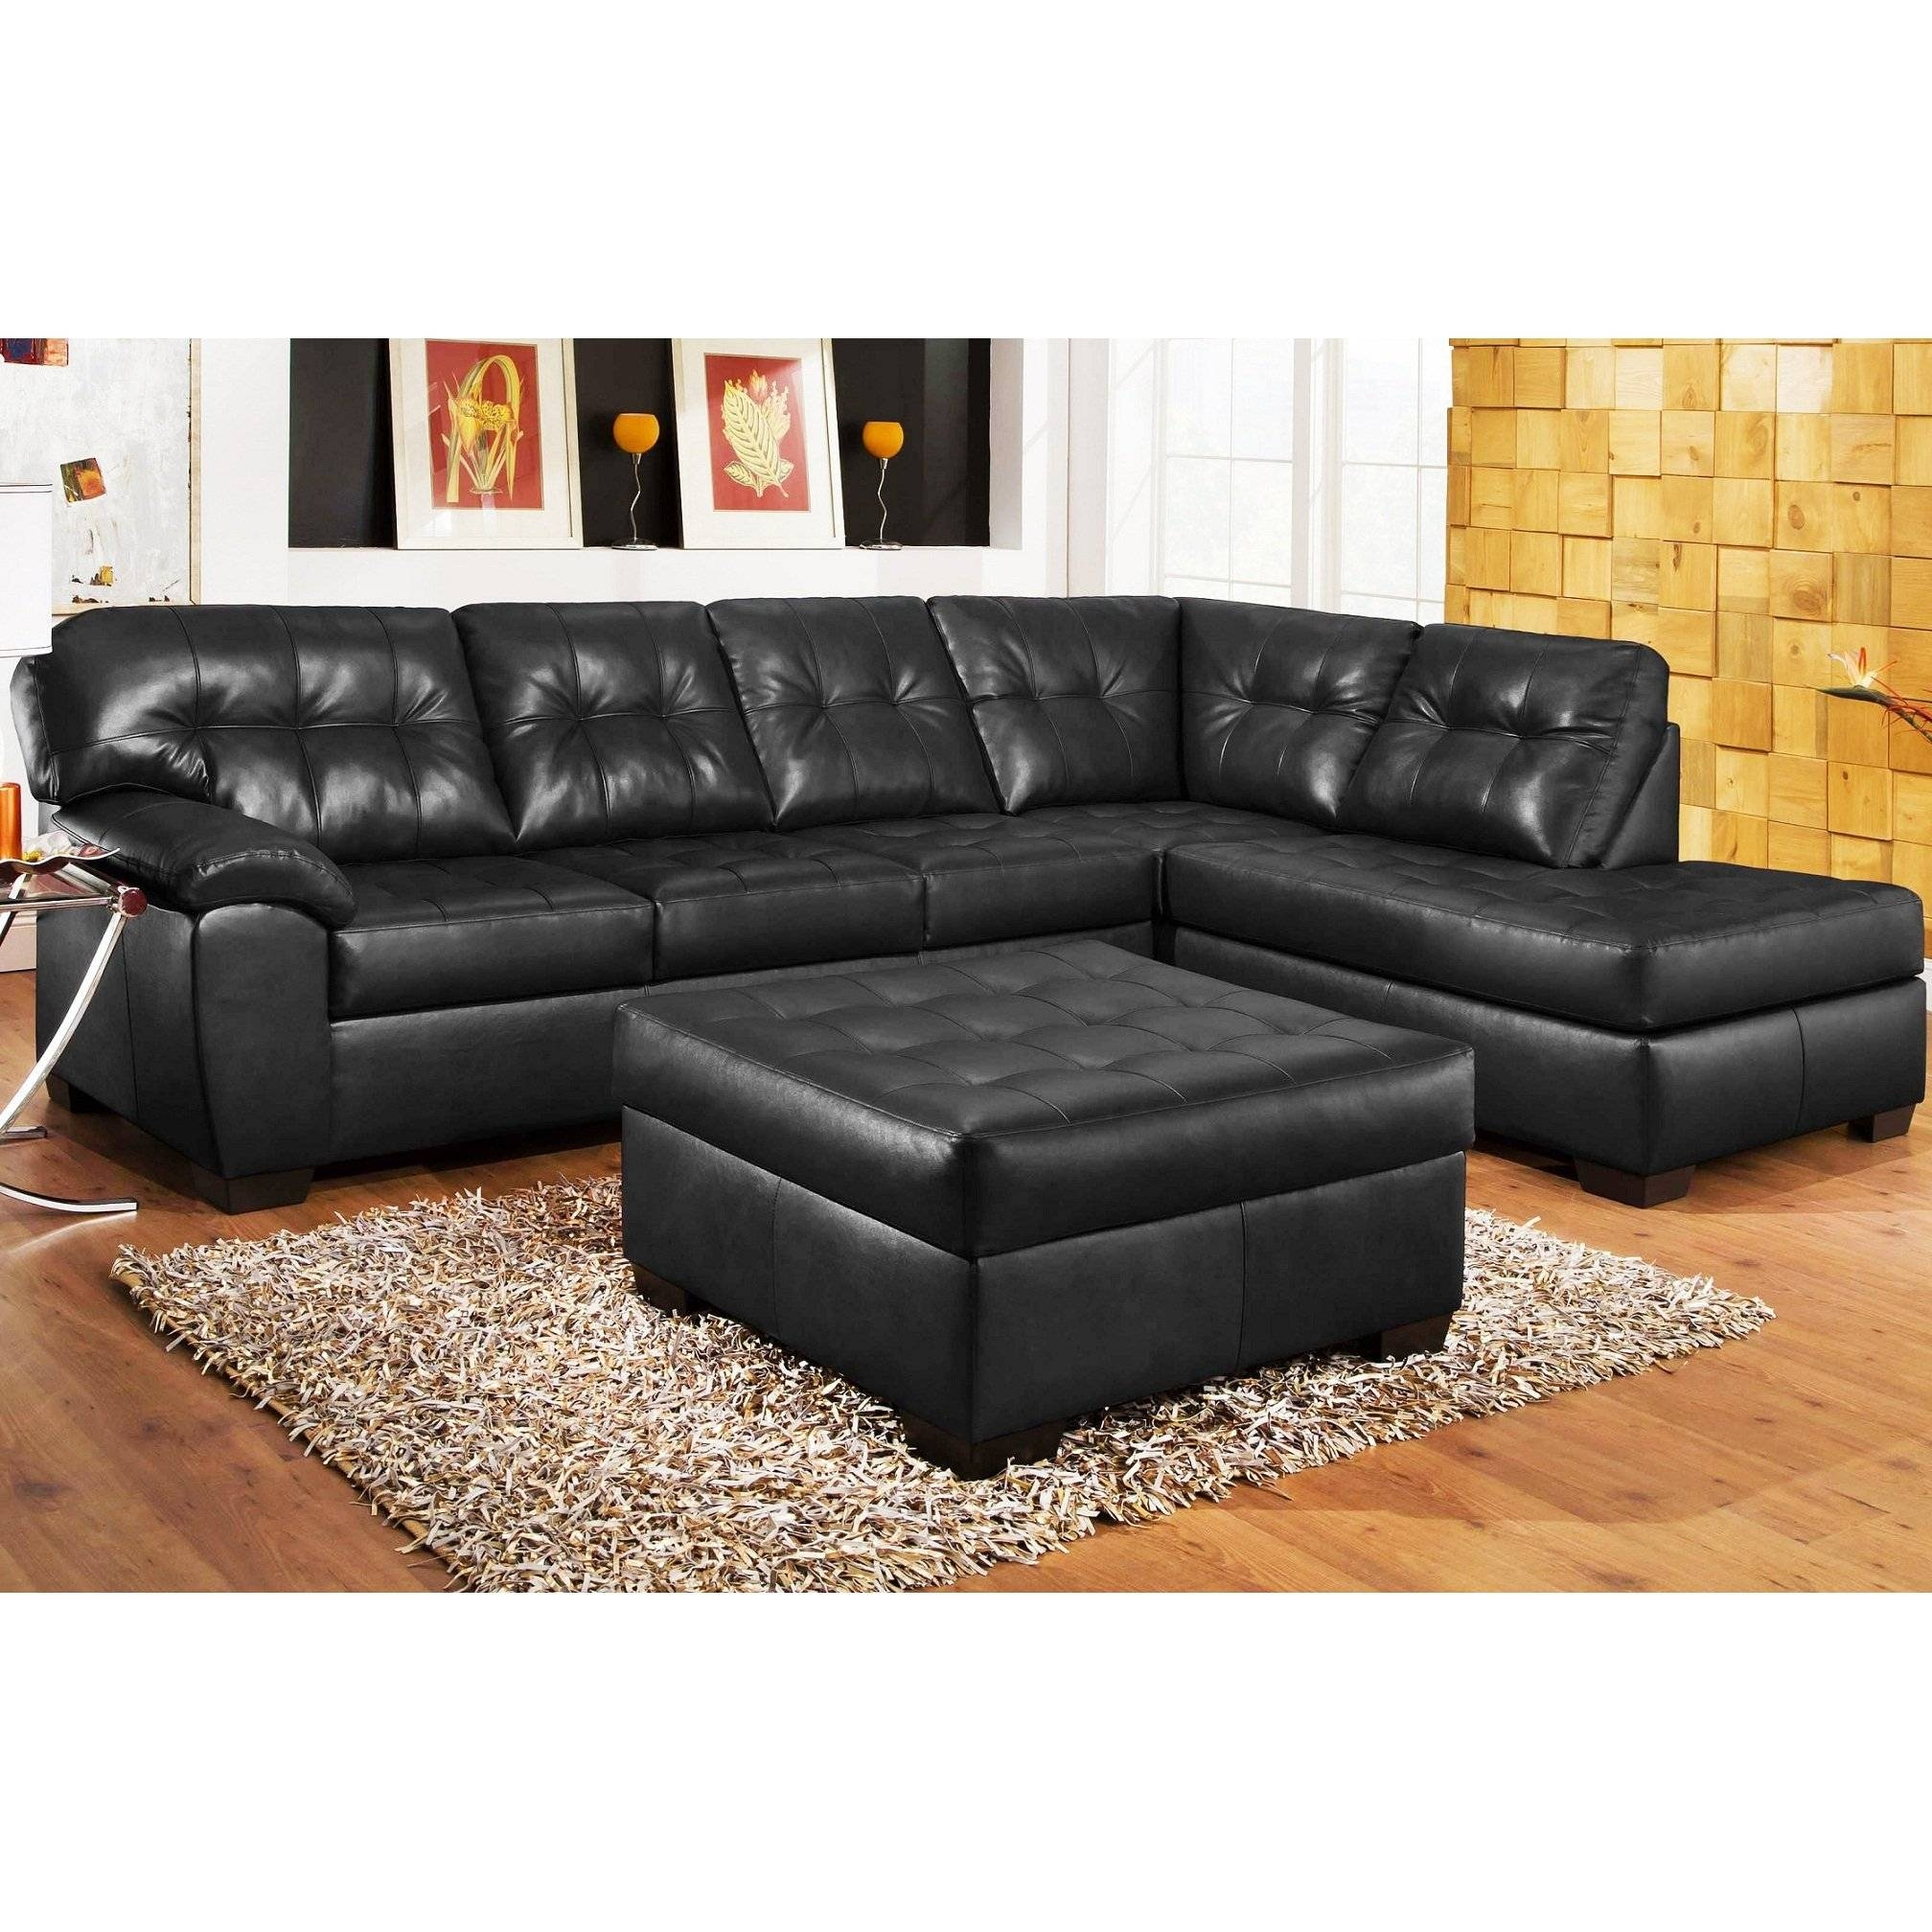 Sectional Sofa In Black Bonded Leather - S3Net - Sectional Sofas intended for Black Leather Sectional Sleeper Sofas (Image 22 of 30)